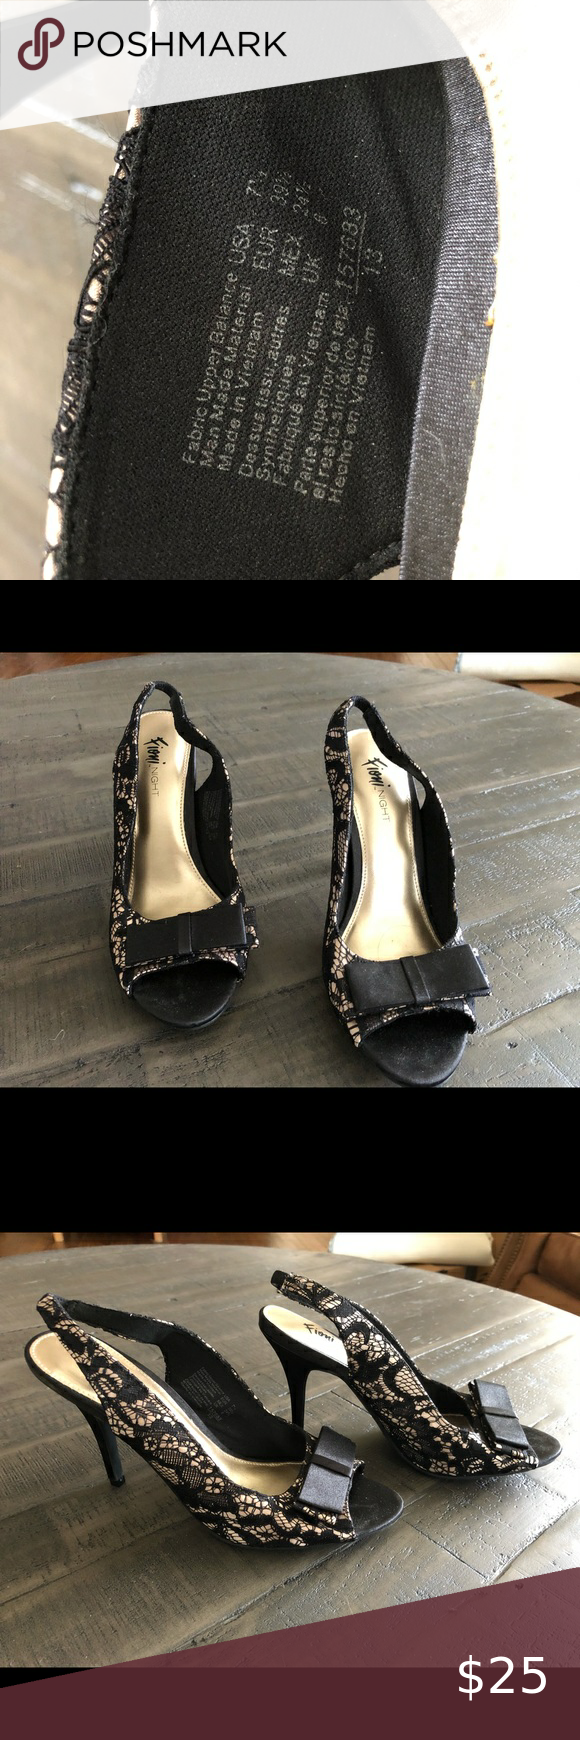 Black and gold heels in 2020 | Gold